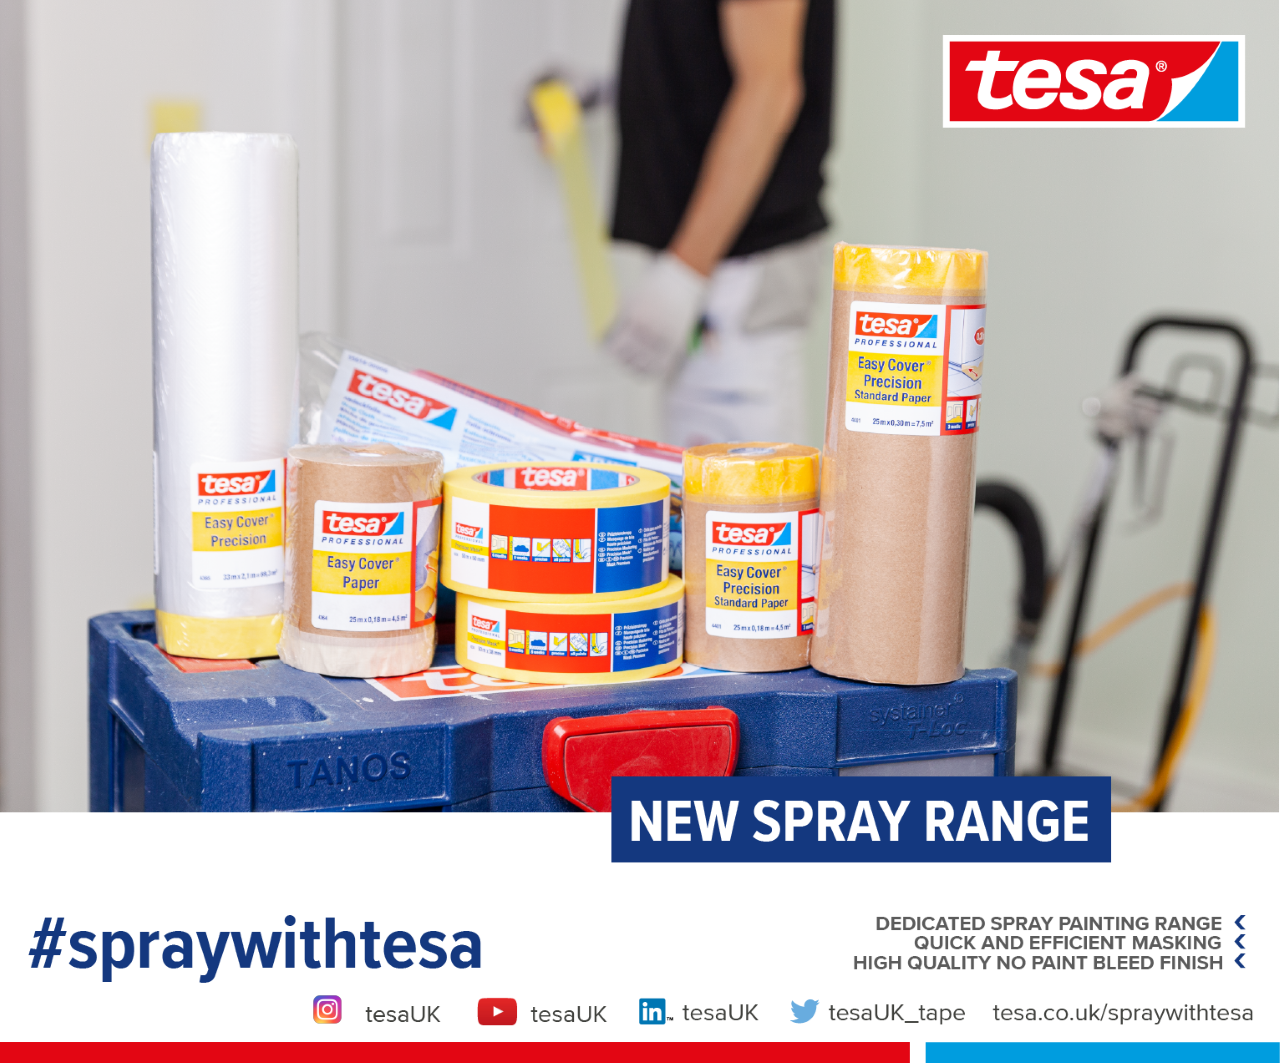 Tesa, who are the market leader in masking products are to Introduce NEW Easy Cover Products for interior and interior spraying.